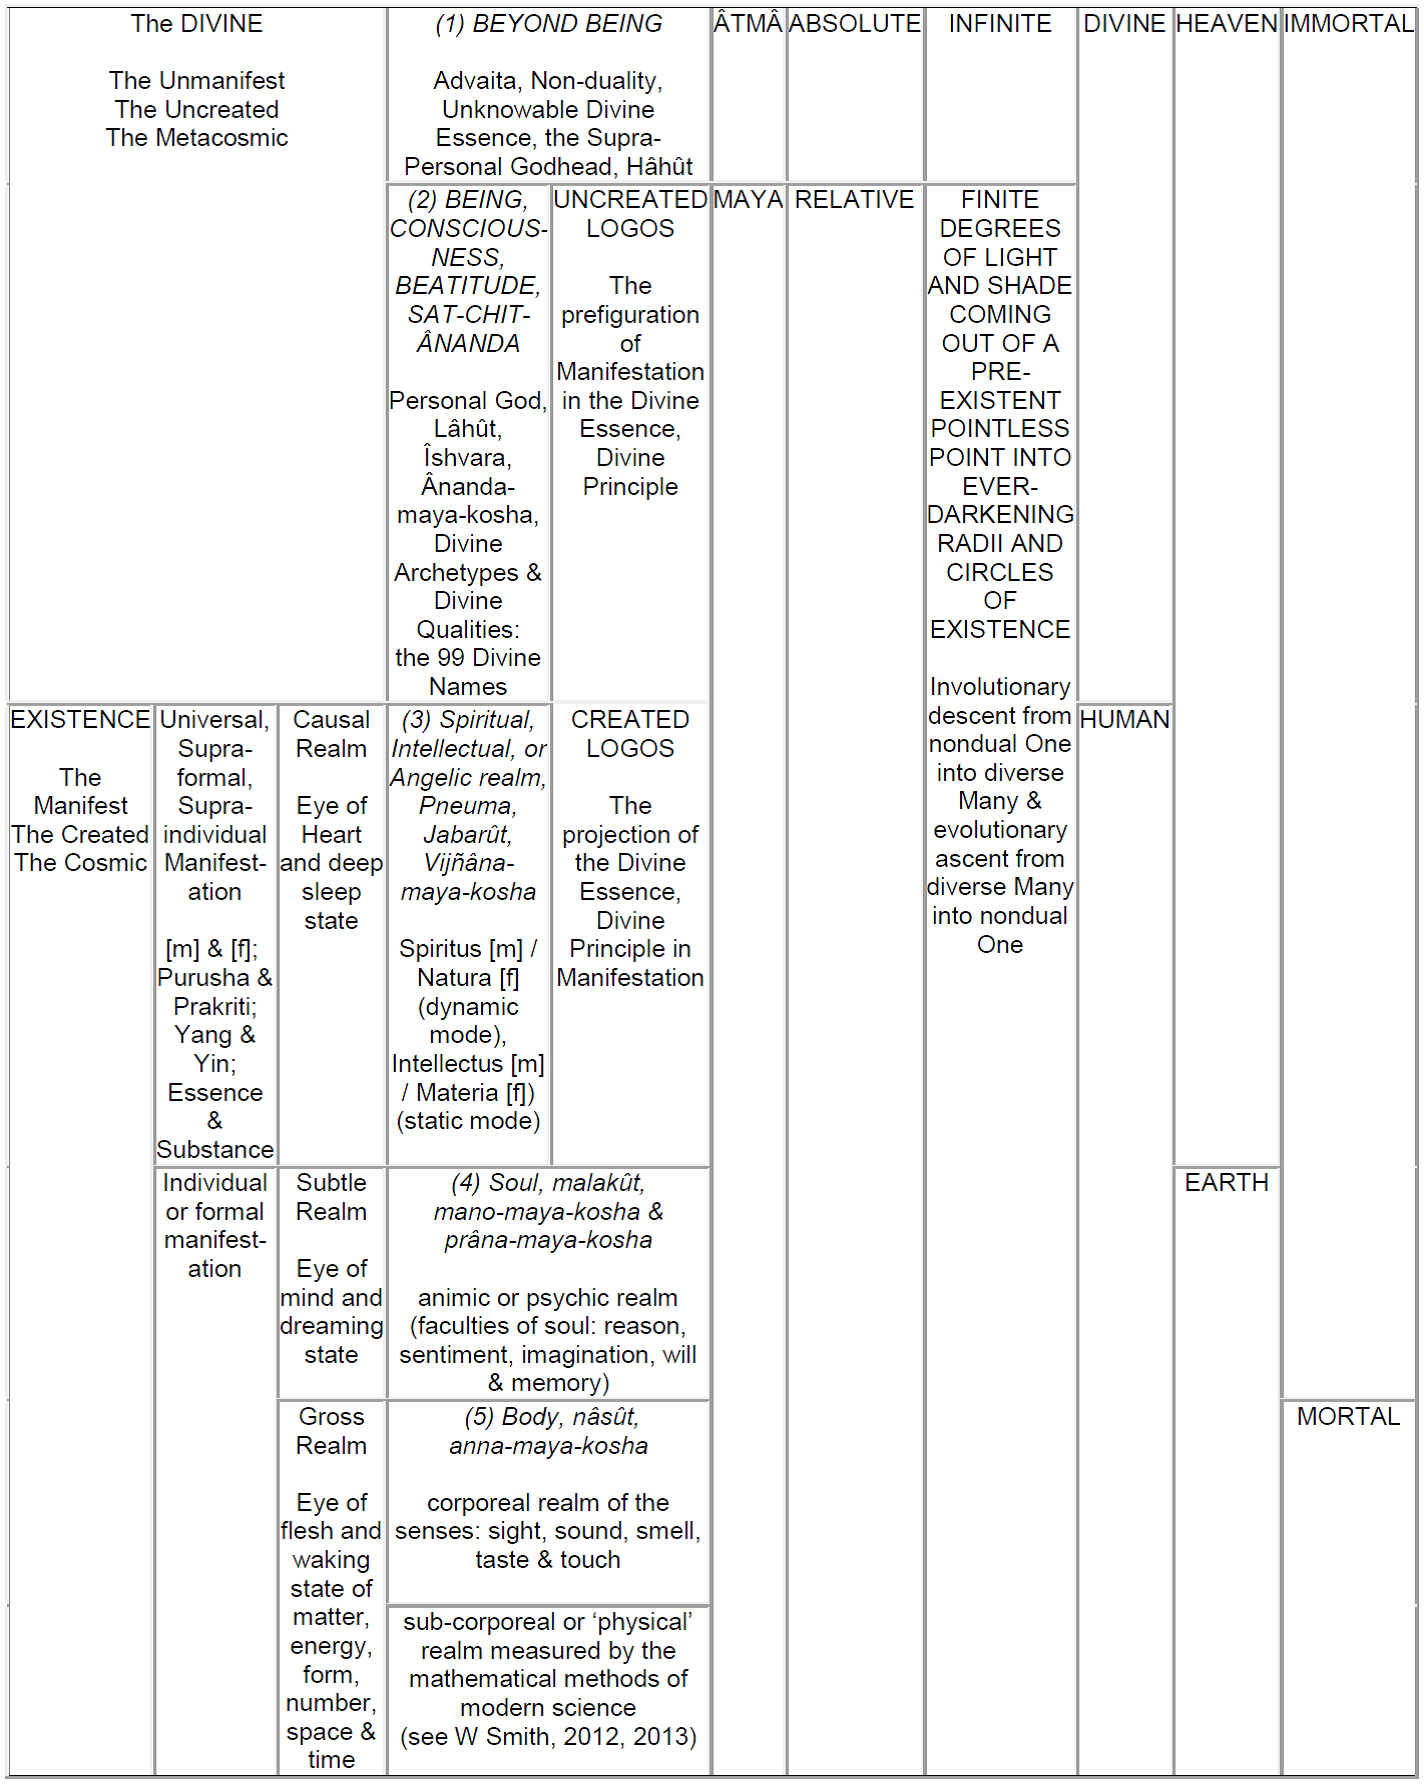 Table 4. A Brief Account of the Five Divine Presences in the Kosmos (macrocosmos), in Human Communities (mesocosmos), and in a Human Being (microcosmos).